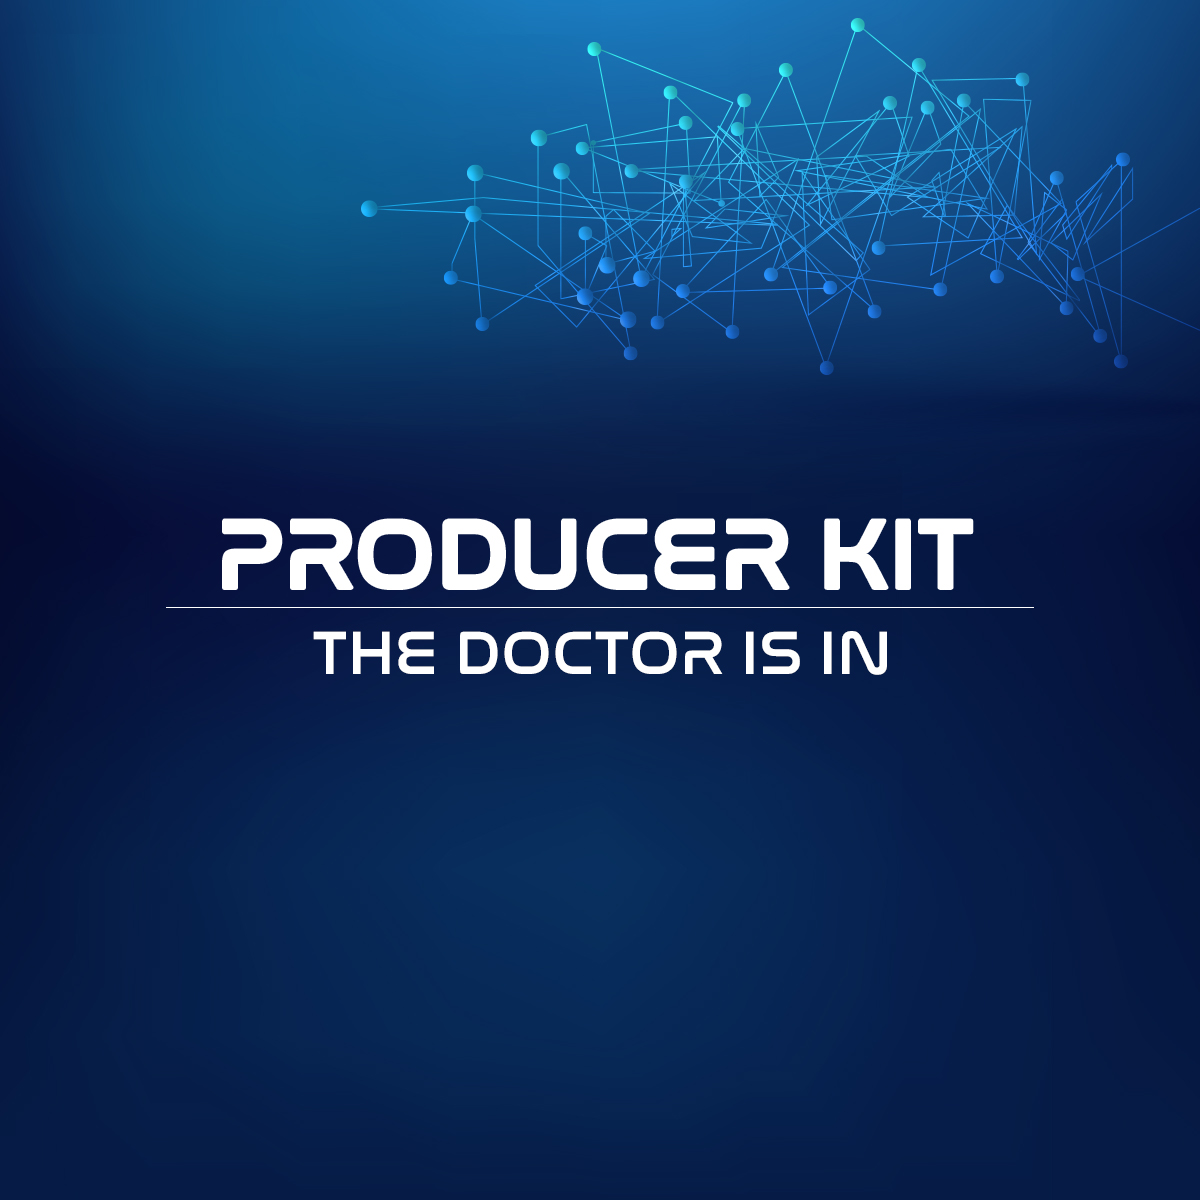 Producer Kit The Doctor Is In